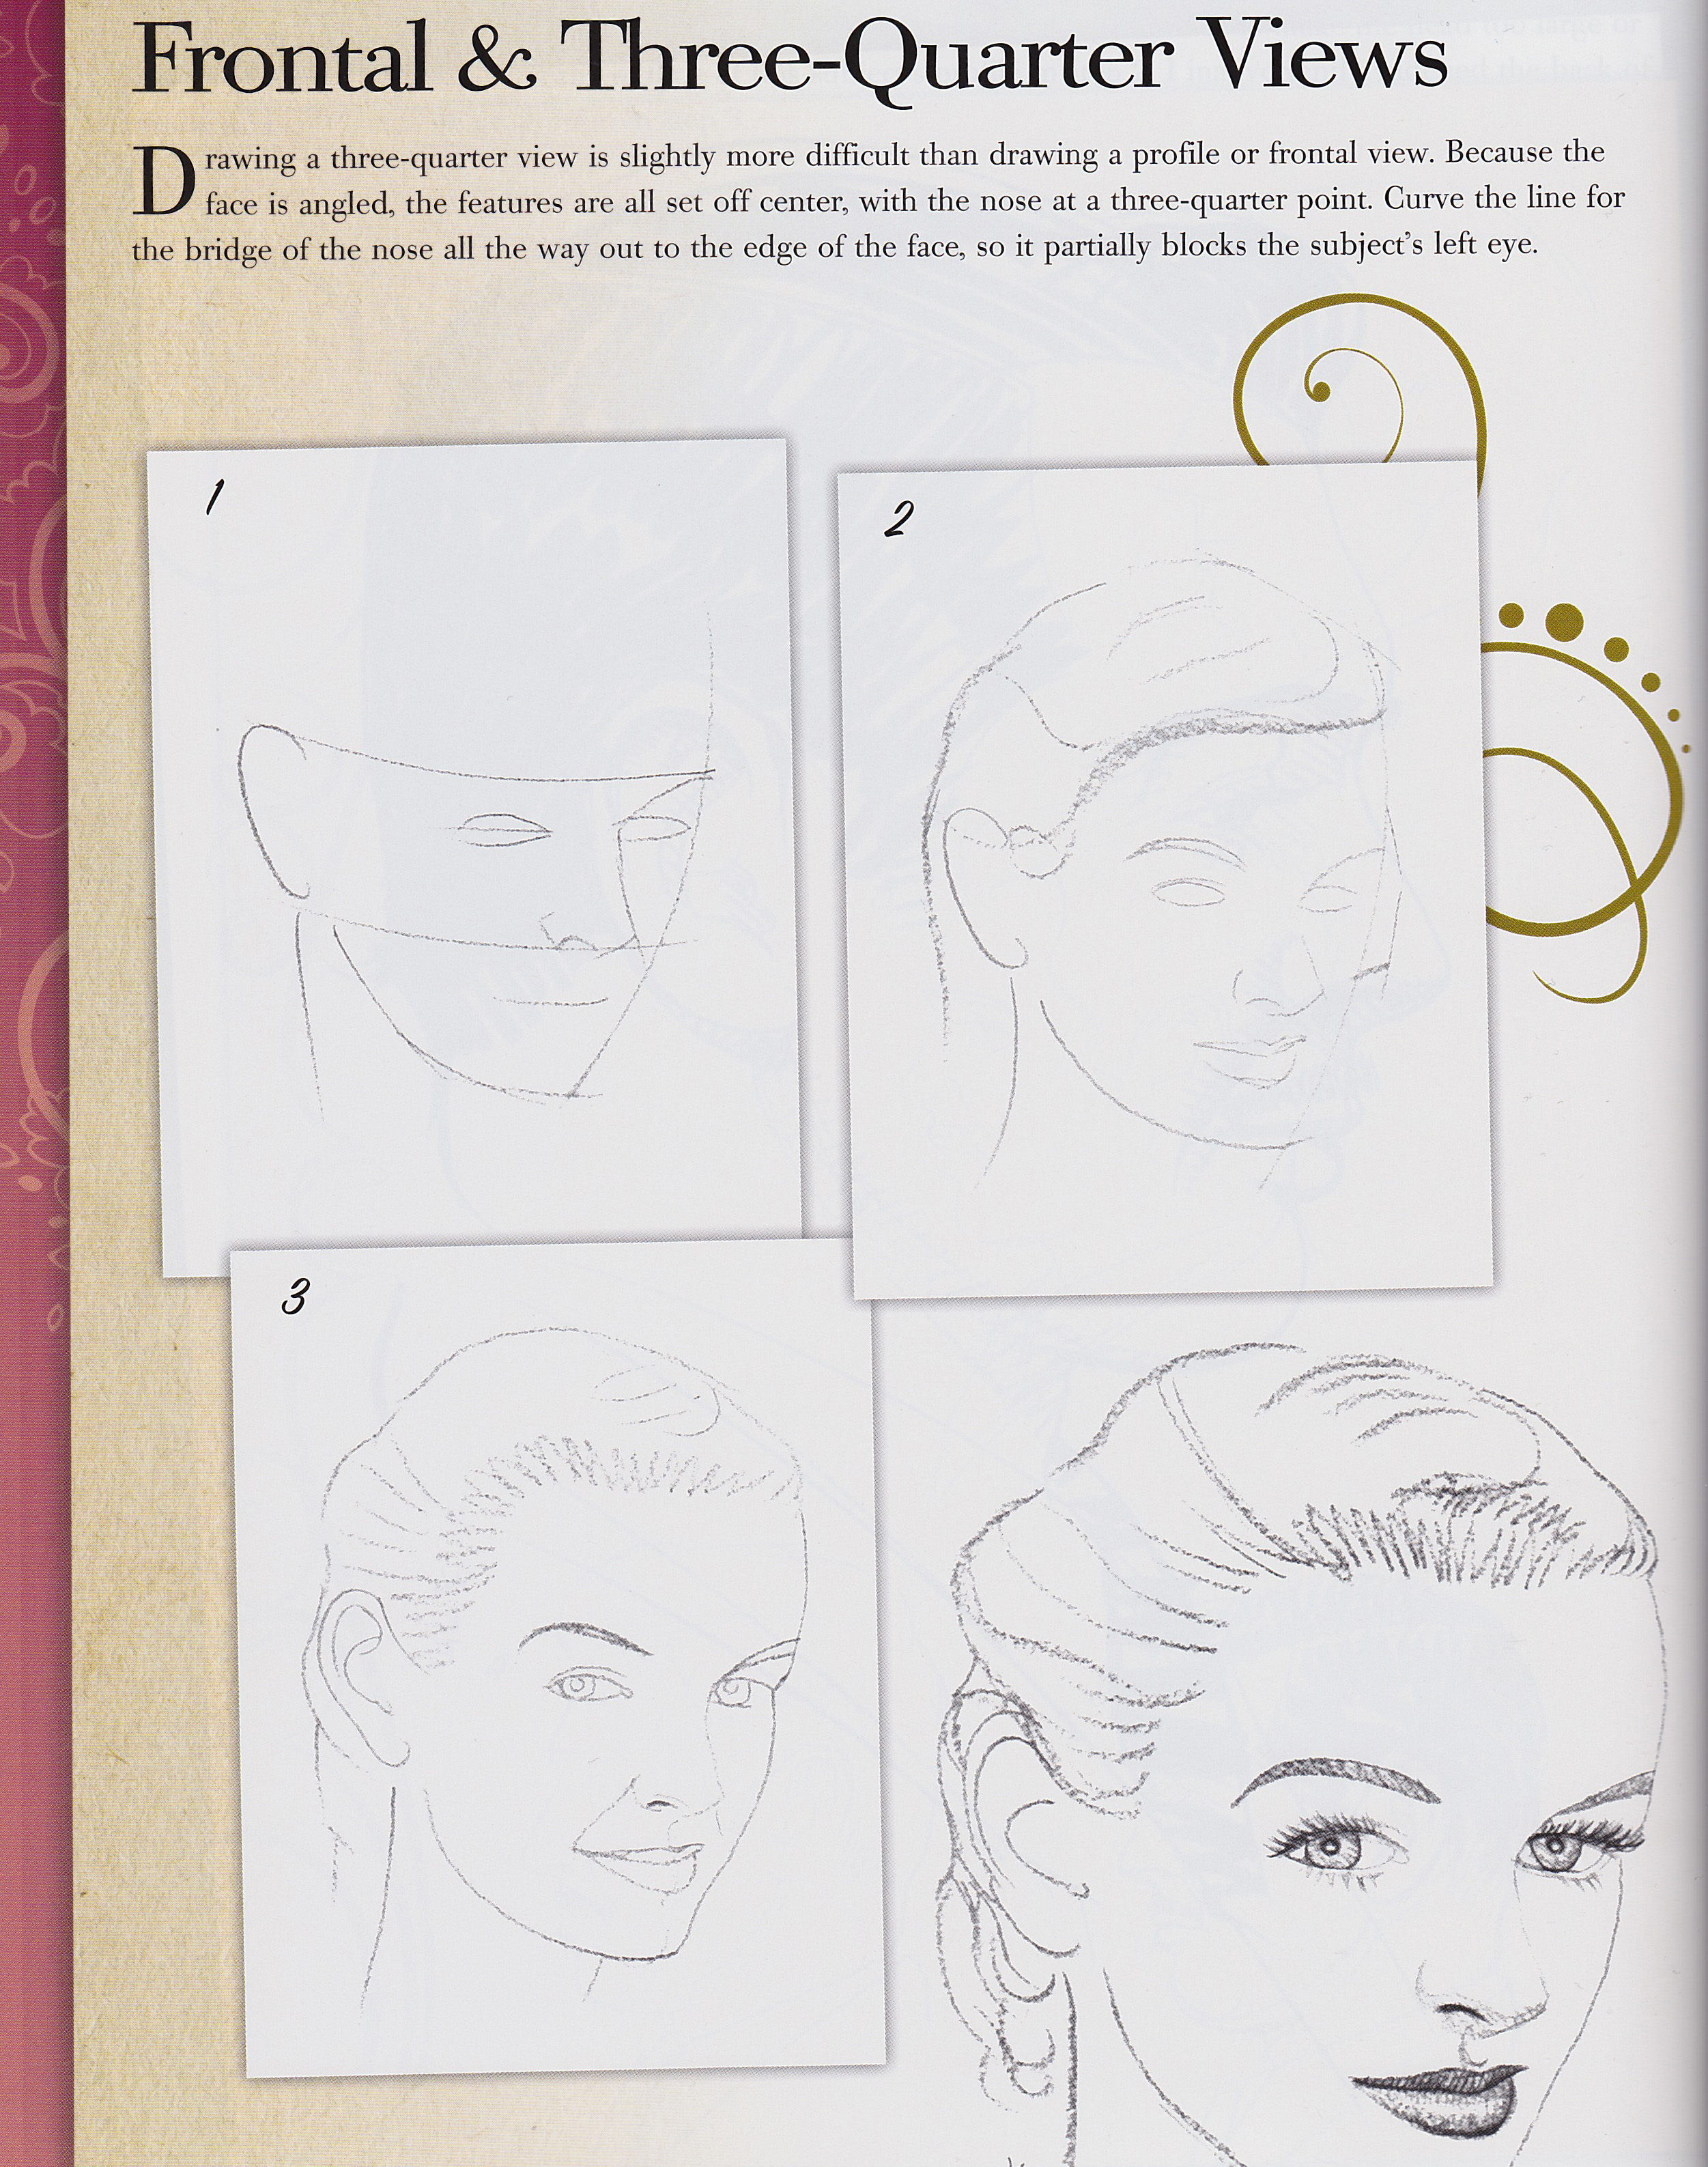 Pencil Drawing Kit: Learn to Draw 12 Classic Subjects, Step by Step (Walter Foster Drawing Kits)